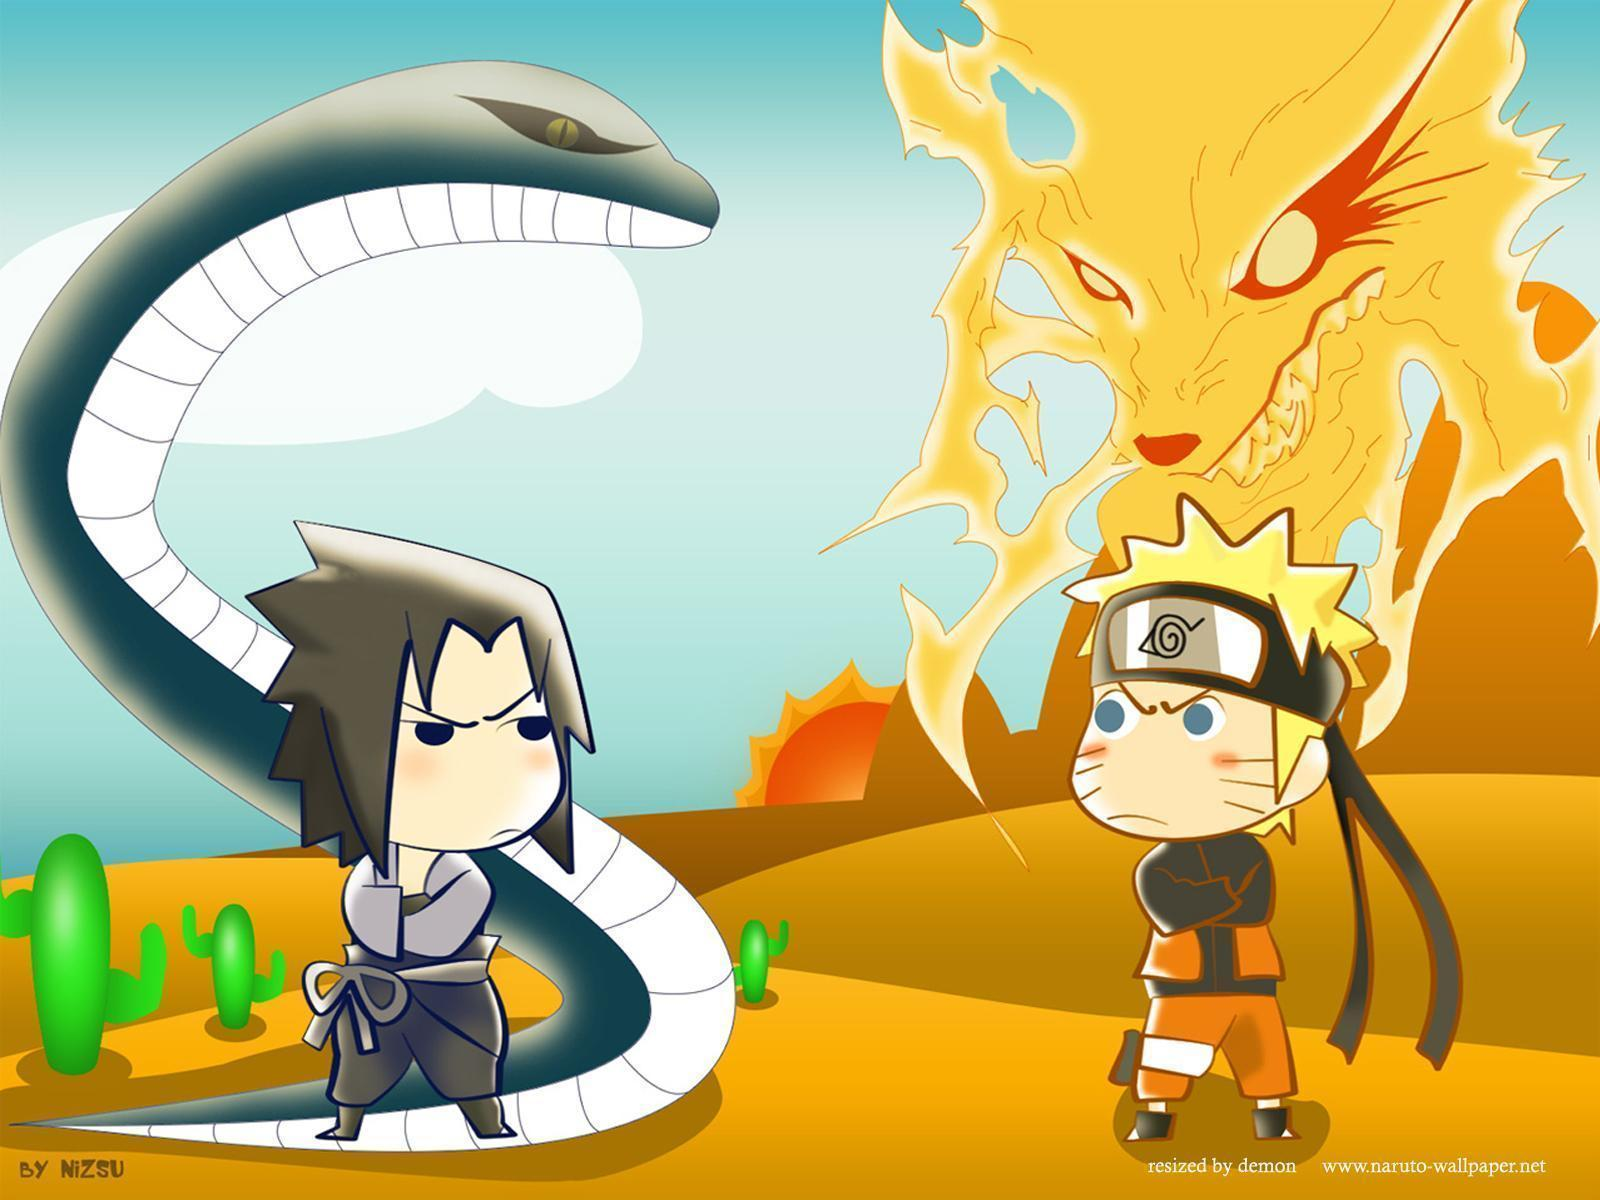 Naruto vs Sasuke Wallpapers, wallpaper, Naruto vs Sasuke